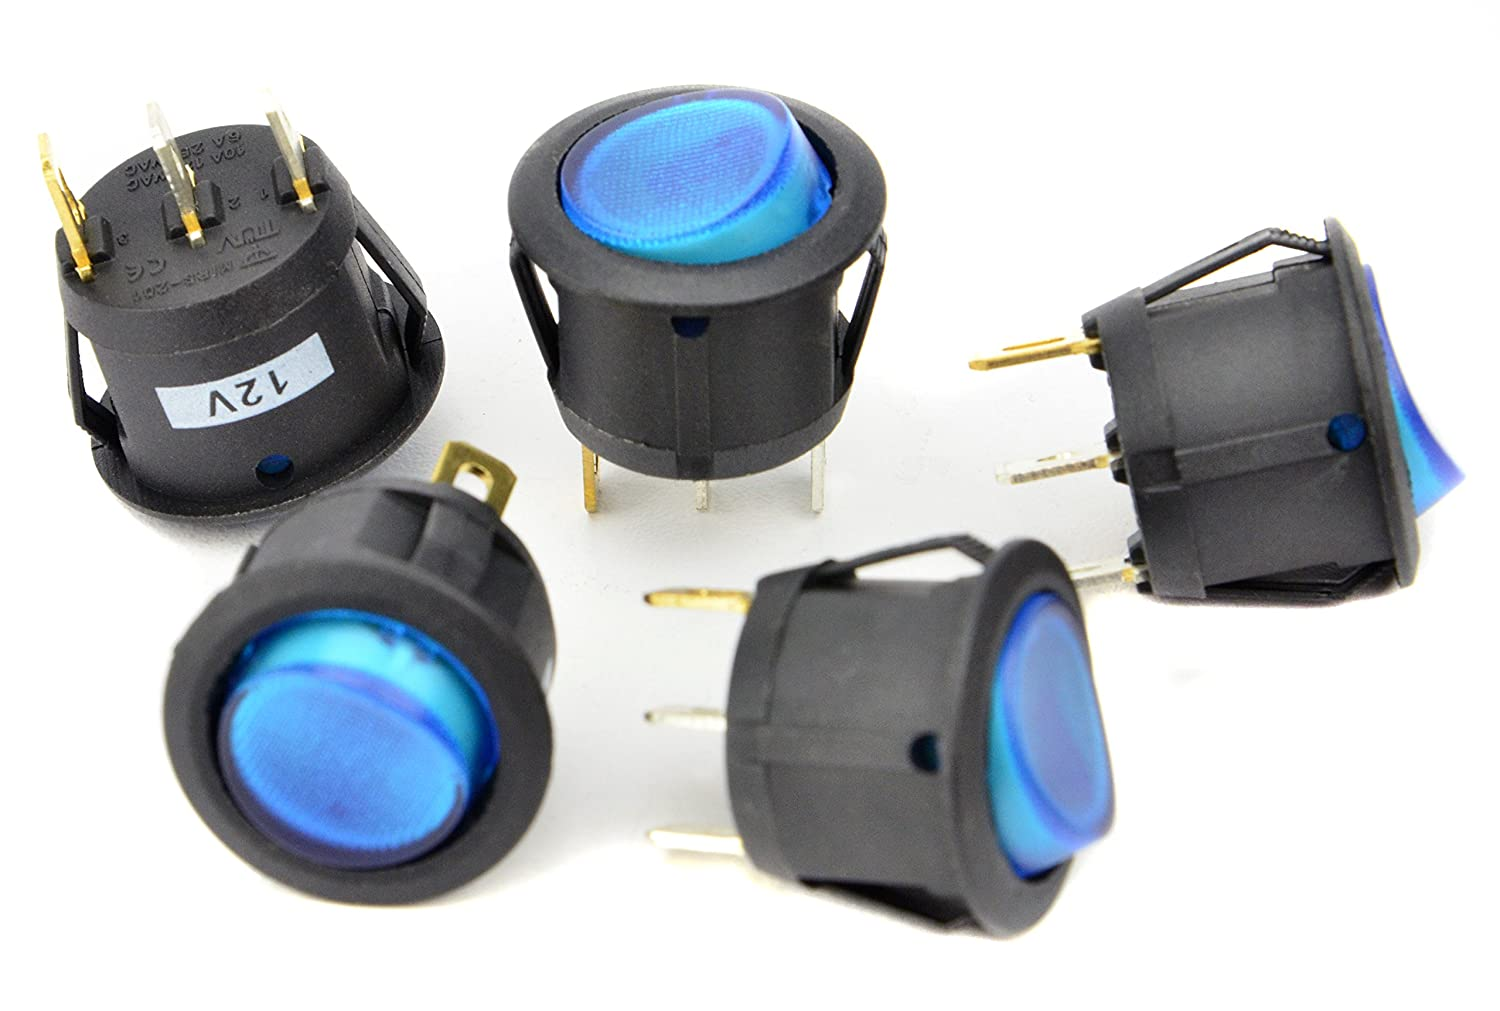 12 Volt Round 3 Prong Blue Led Rocker Switch Spst Toggle All Electronics Corp 12v 5 Pack Sports Outdoors